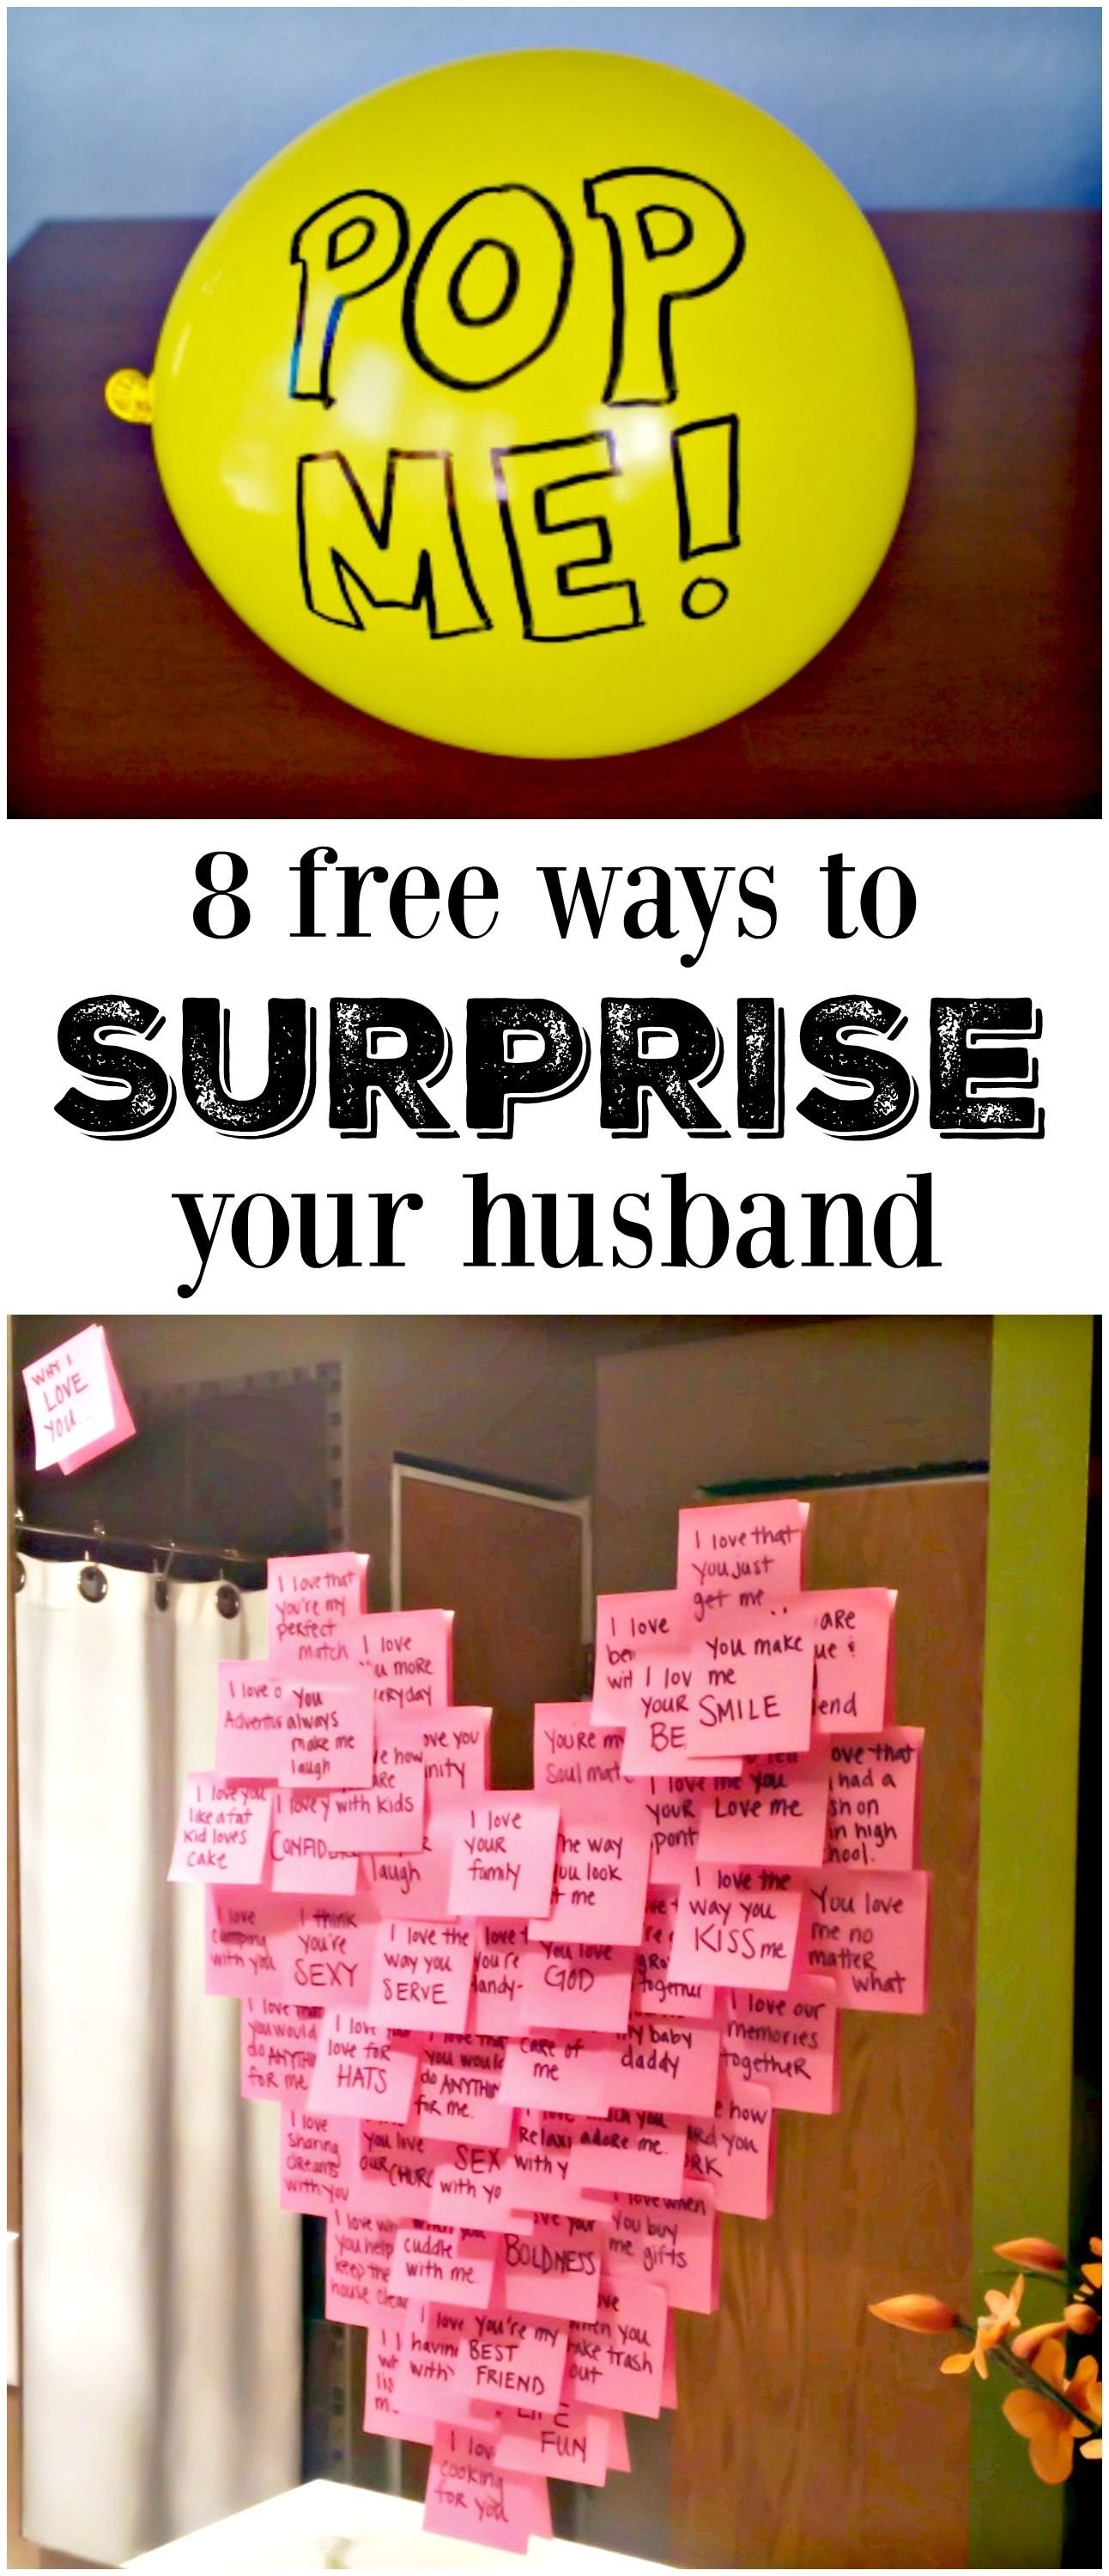 10 Unique Birthday Ideas For Your Boyfriend 8 meaningful ways to make his day free gift and relationships 4 2020